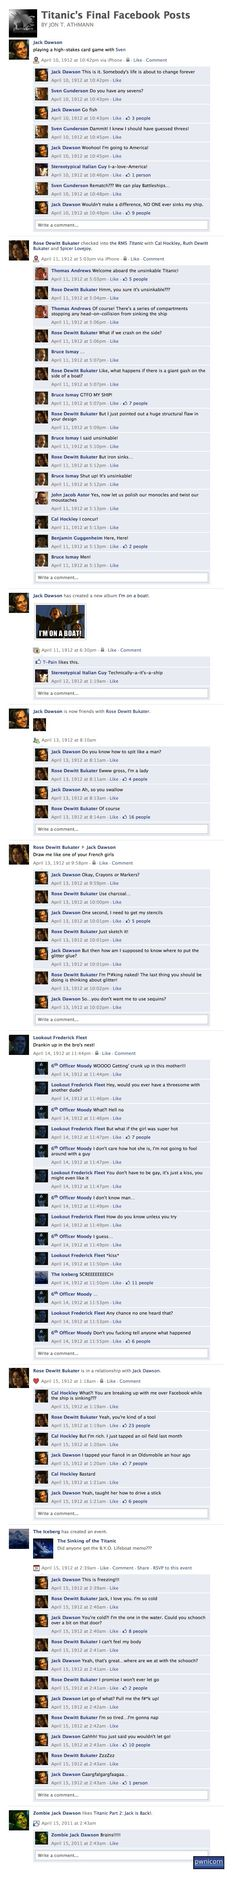 Titanic's Final Facebook Posts - this made me laugh more than a little bit. LOL